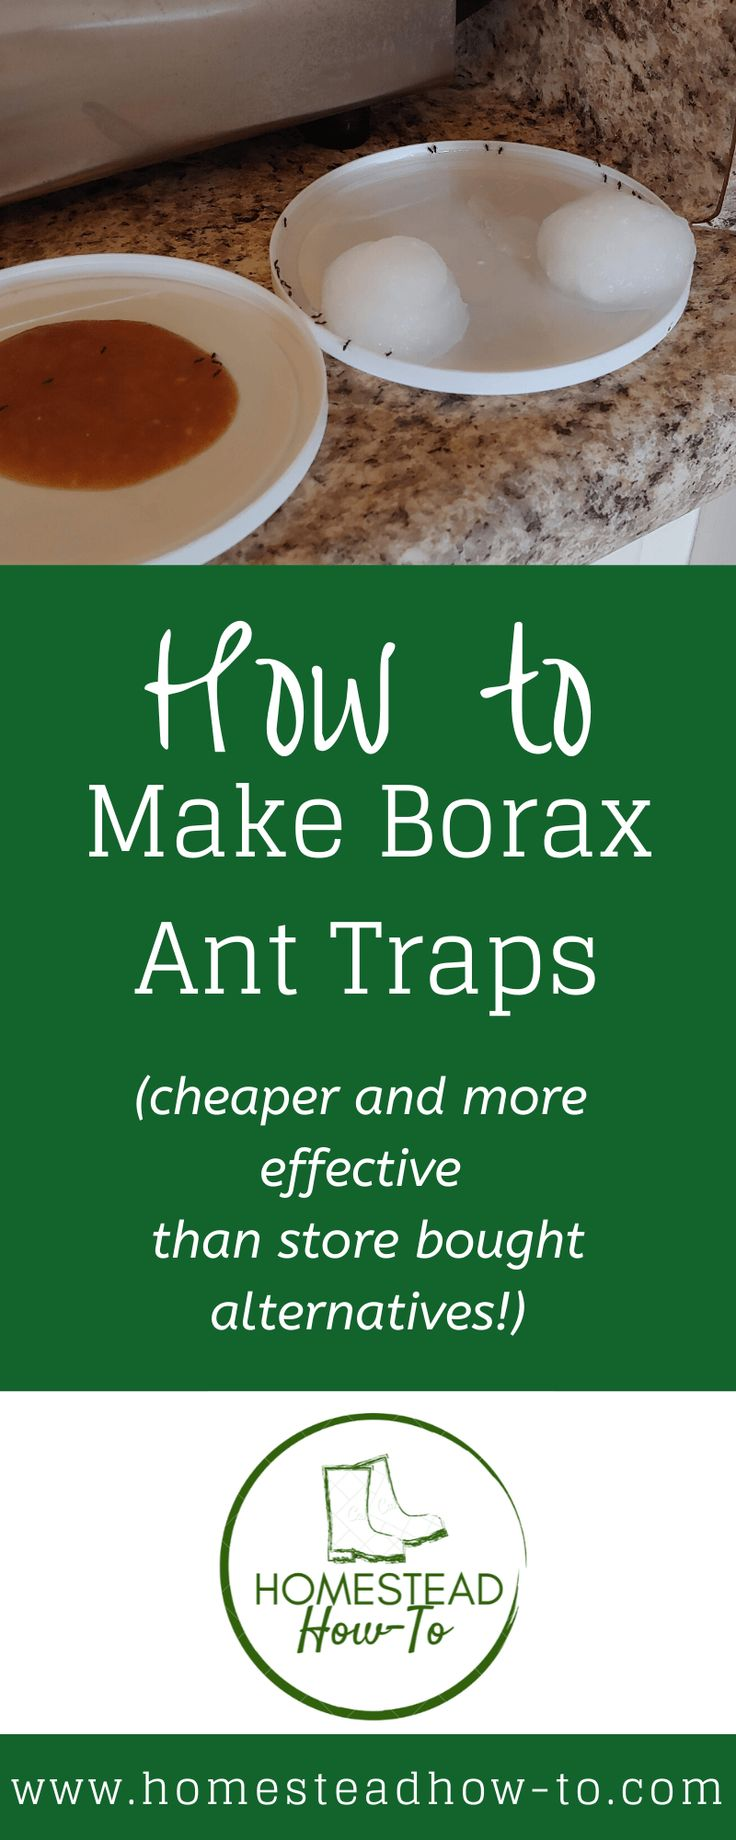 How to make a borax ant trap homestead howto in 2020